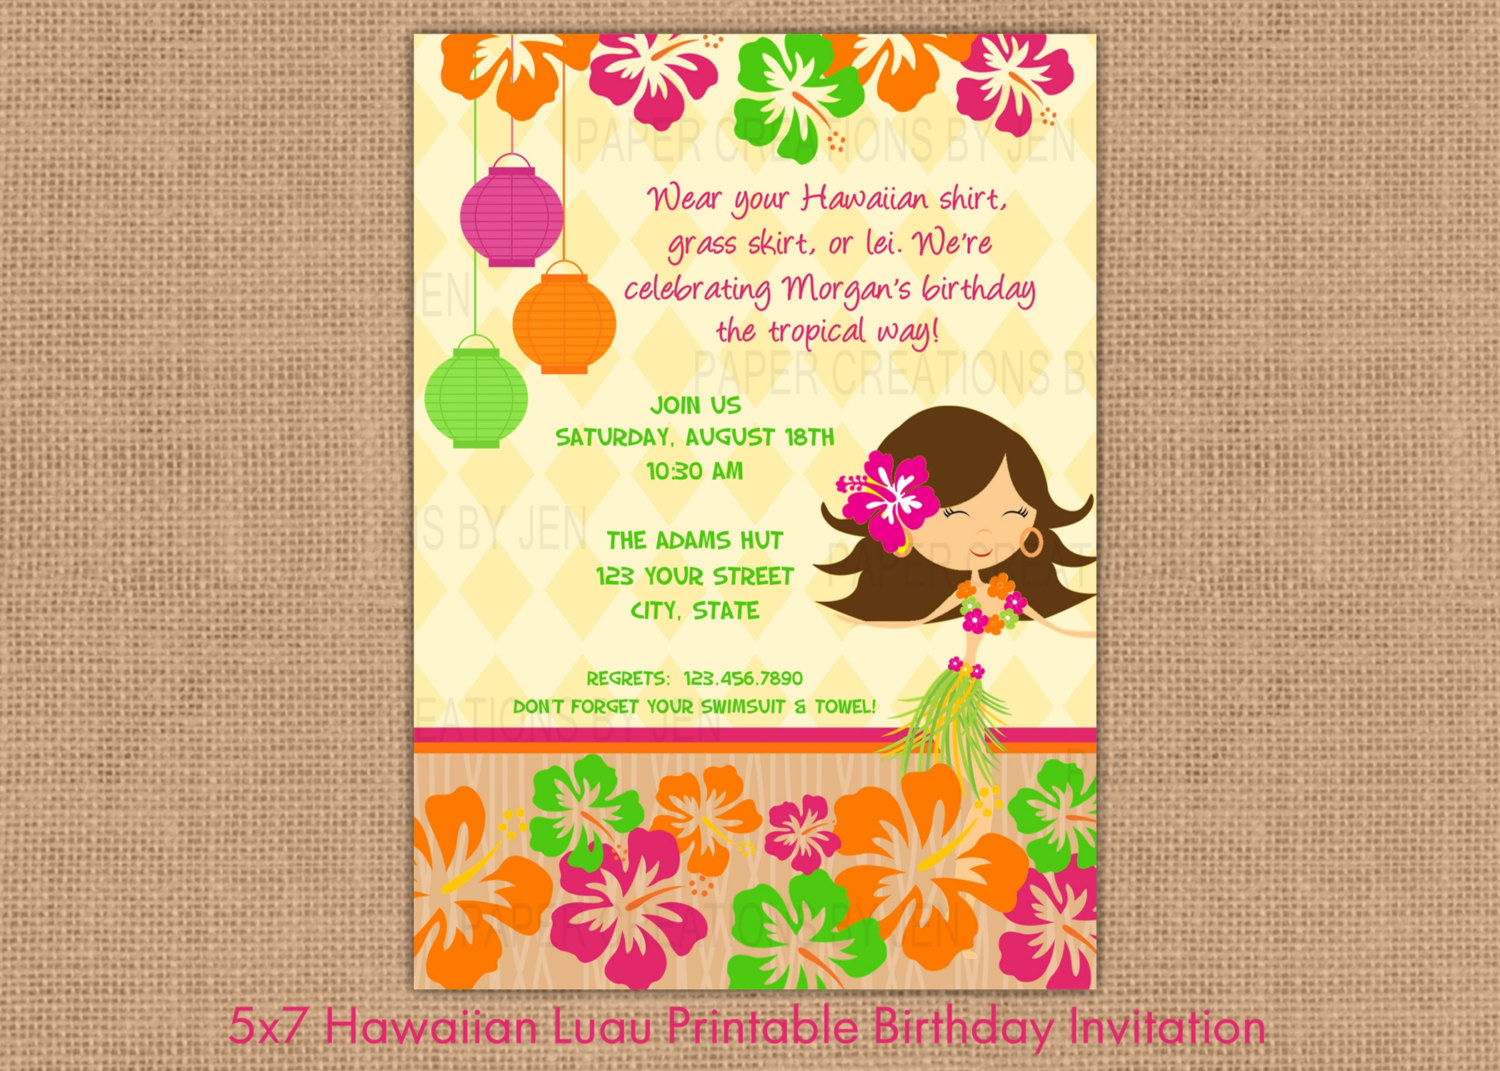 printable luau invitation clipart clipart kid hawaiian luau printable birthday invitation by papercreationsbyjen